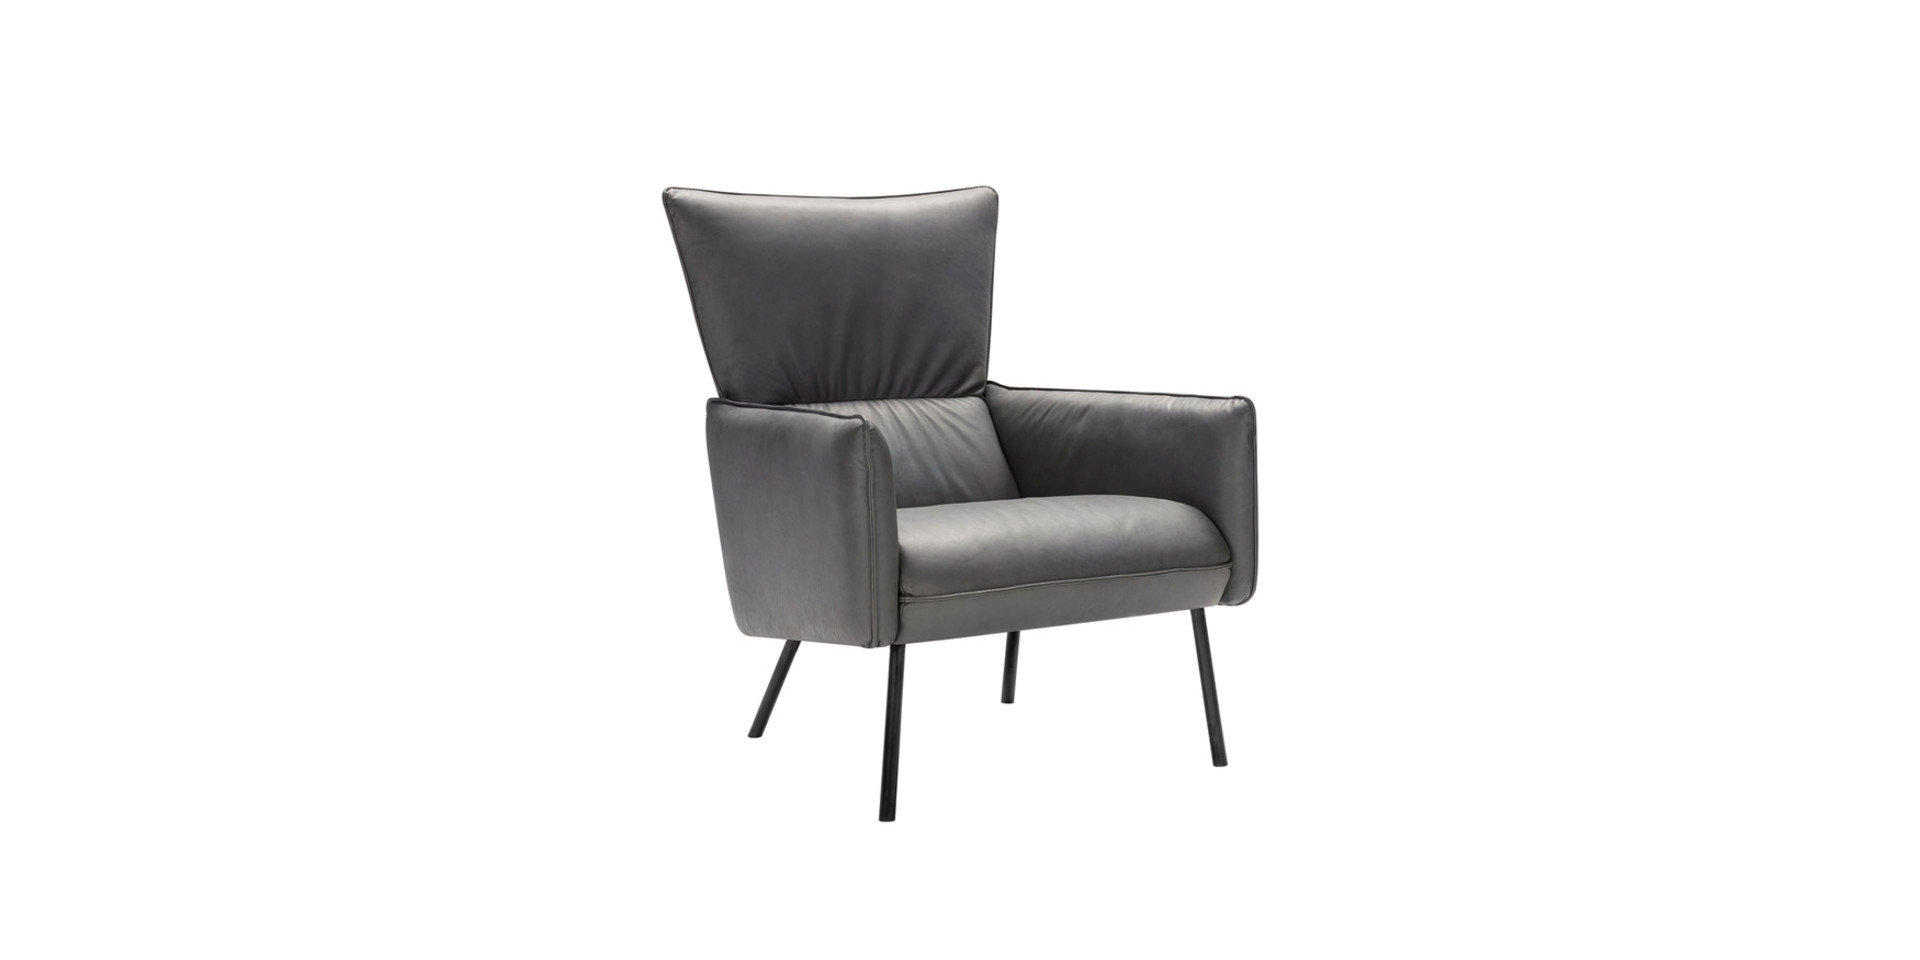 HARRY_armchair_aniline7_grey_2